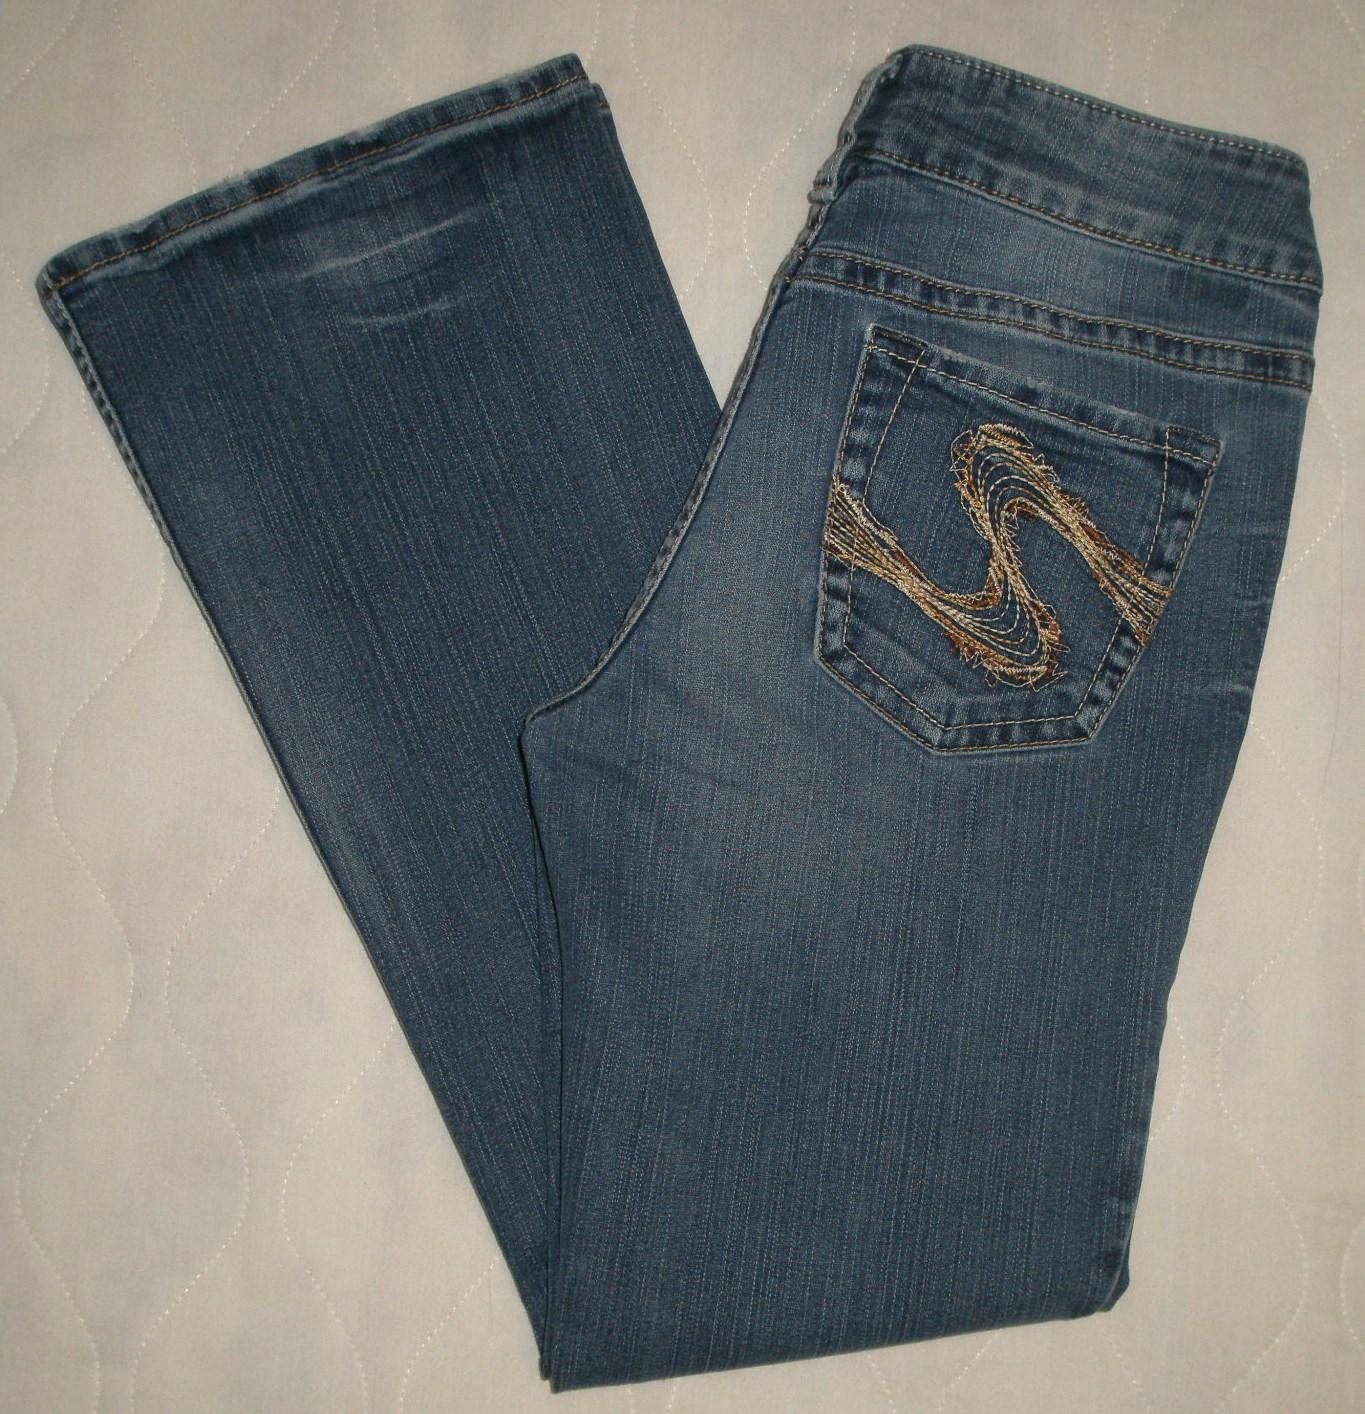 Bootcut jeans urban dictionary